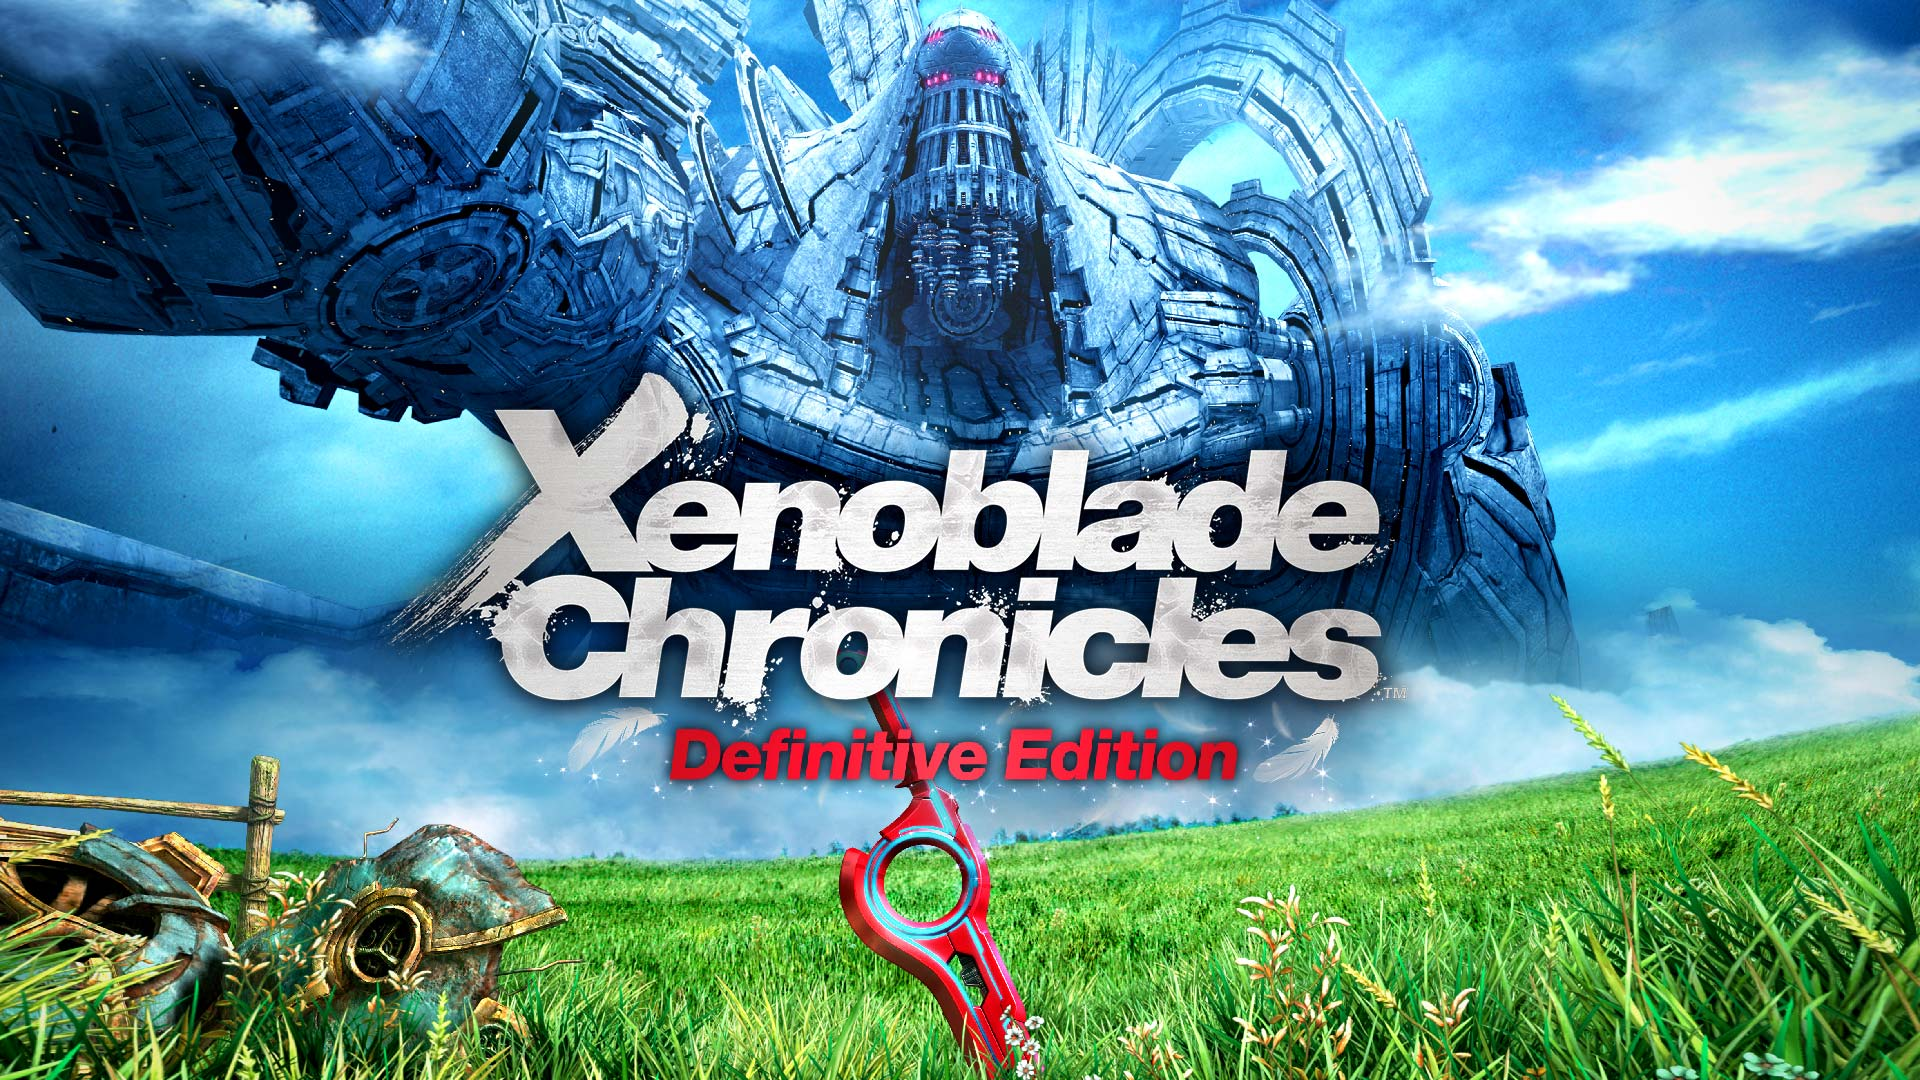 xenoblade chronicles, fast travel